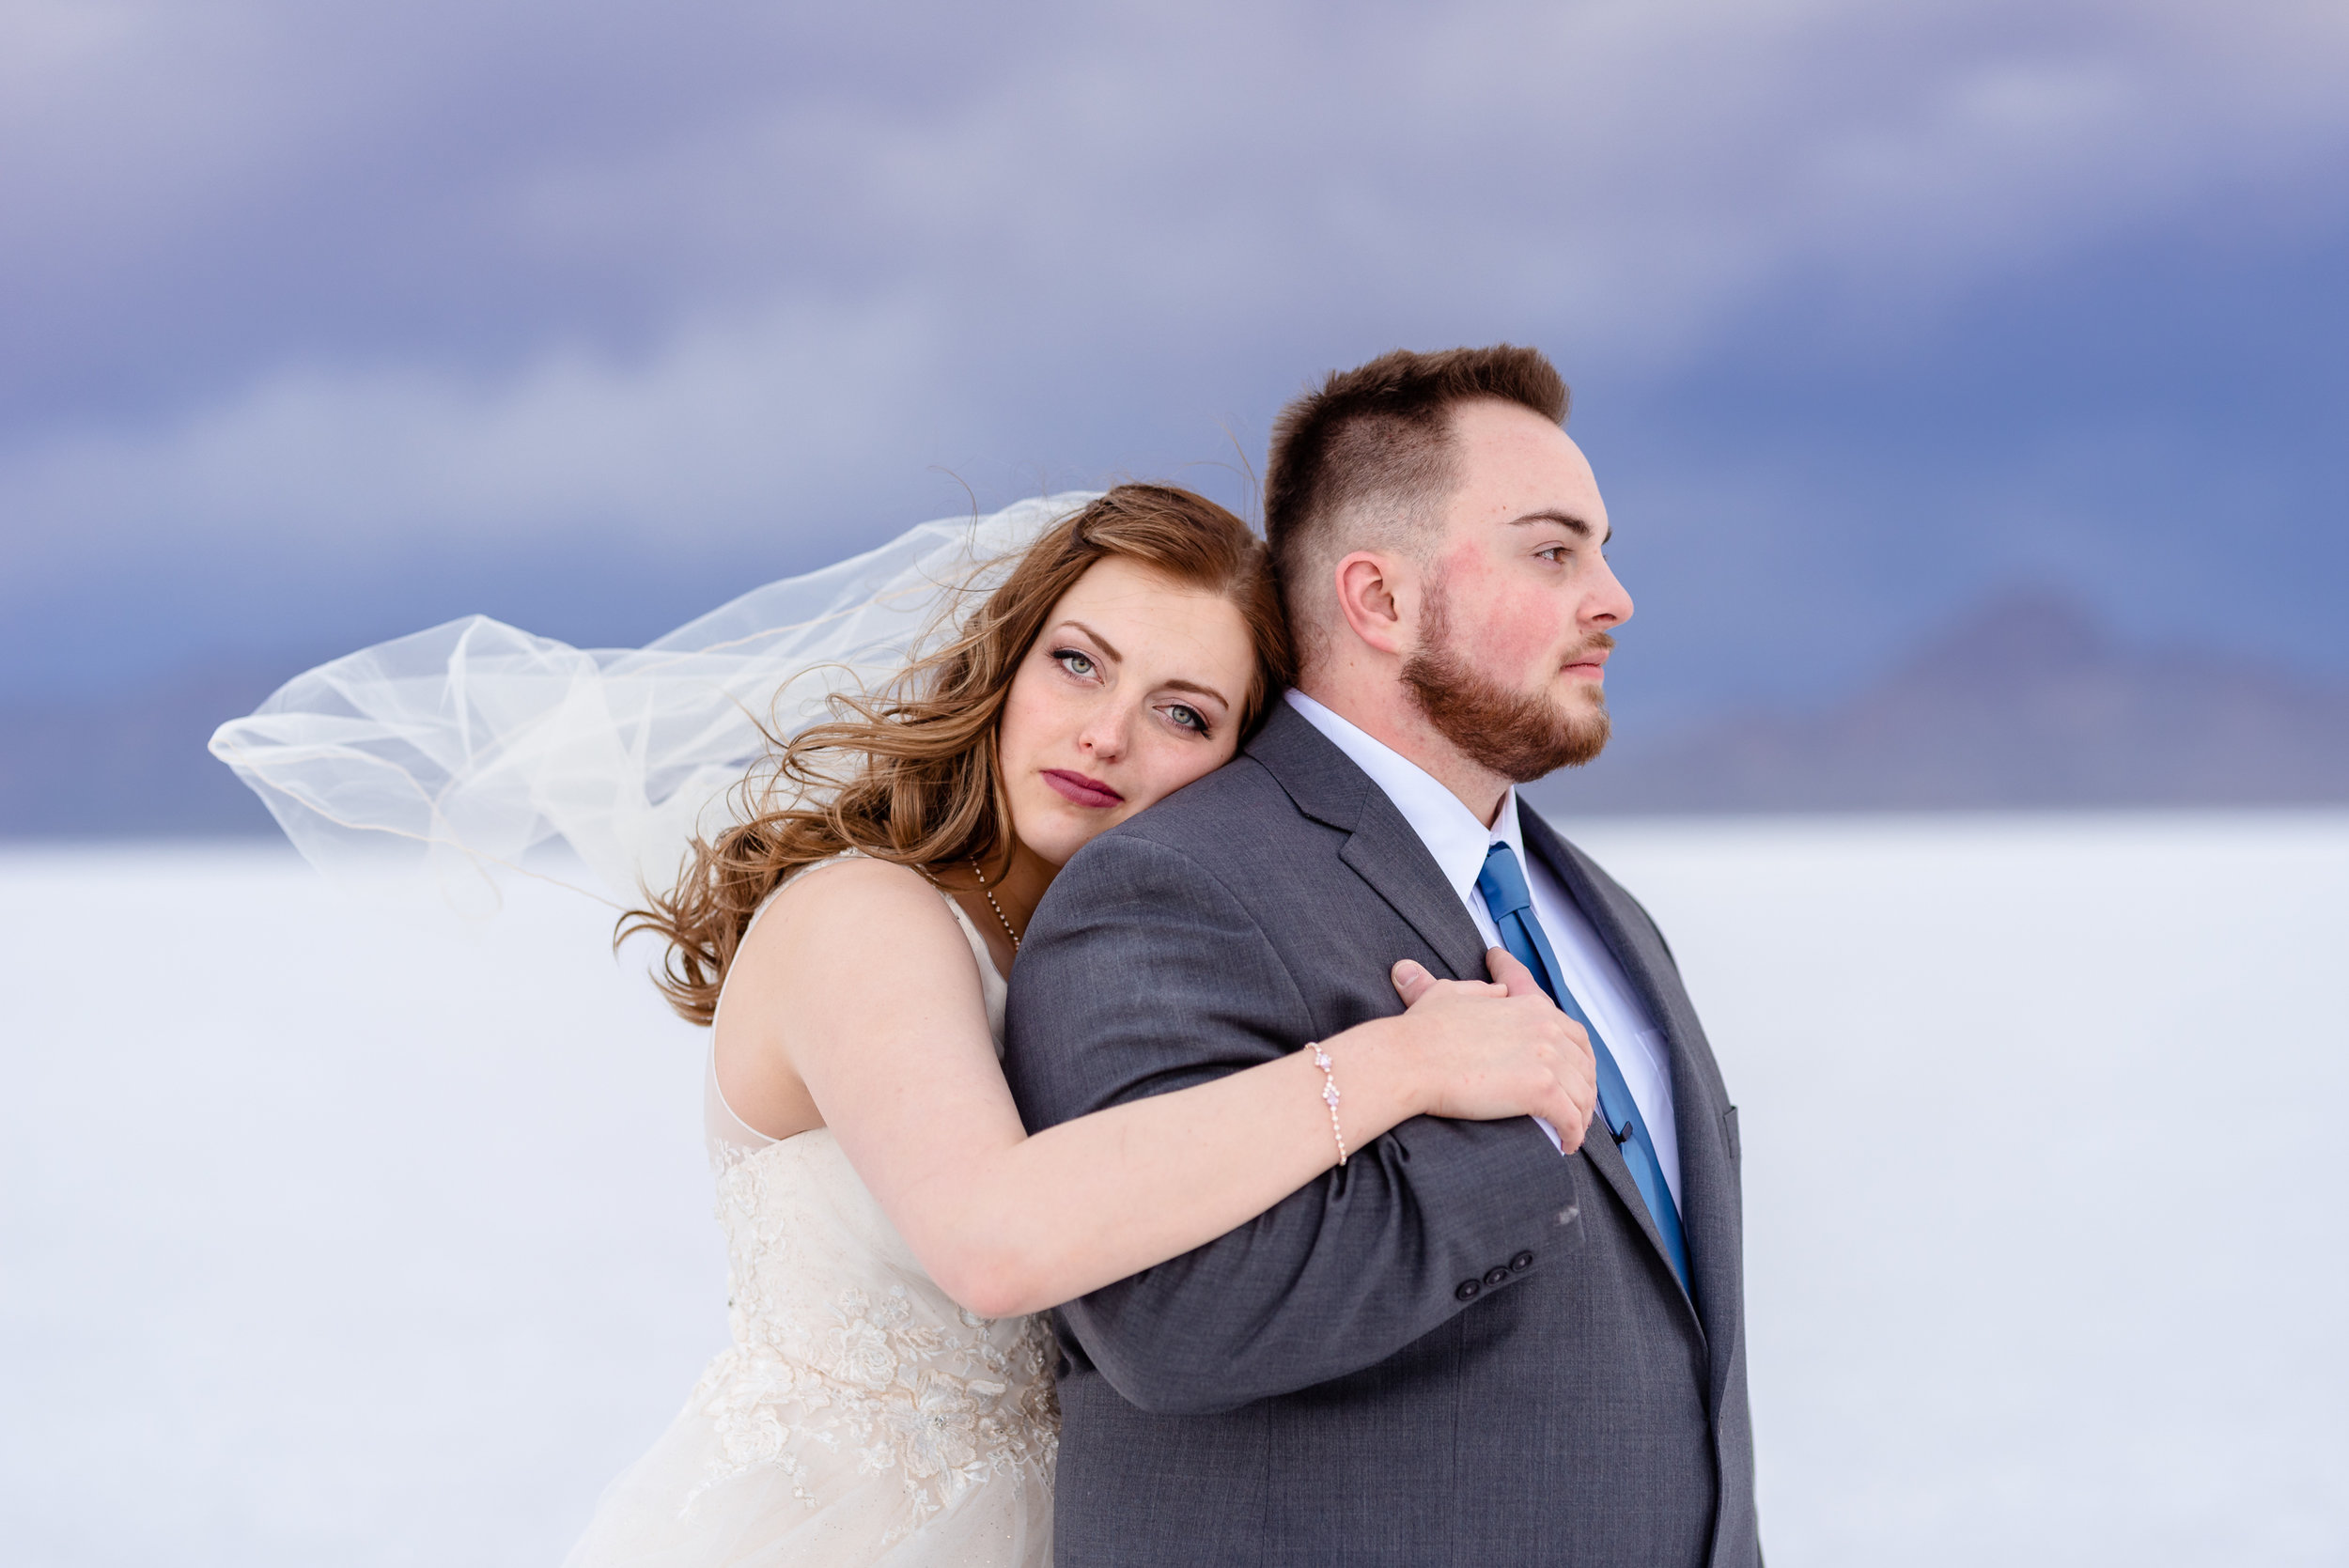 Loving Each other through the storms. Serious faces pose. Formals and first look wedding session taken at the Bonneville Salt Flats in Utah during a stormy evening in May. Gold and ivory wedding dress with groom's blue suit and purple tie. Images taken by Coley Cook Photography.